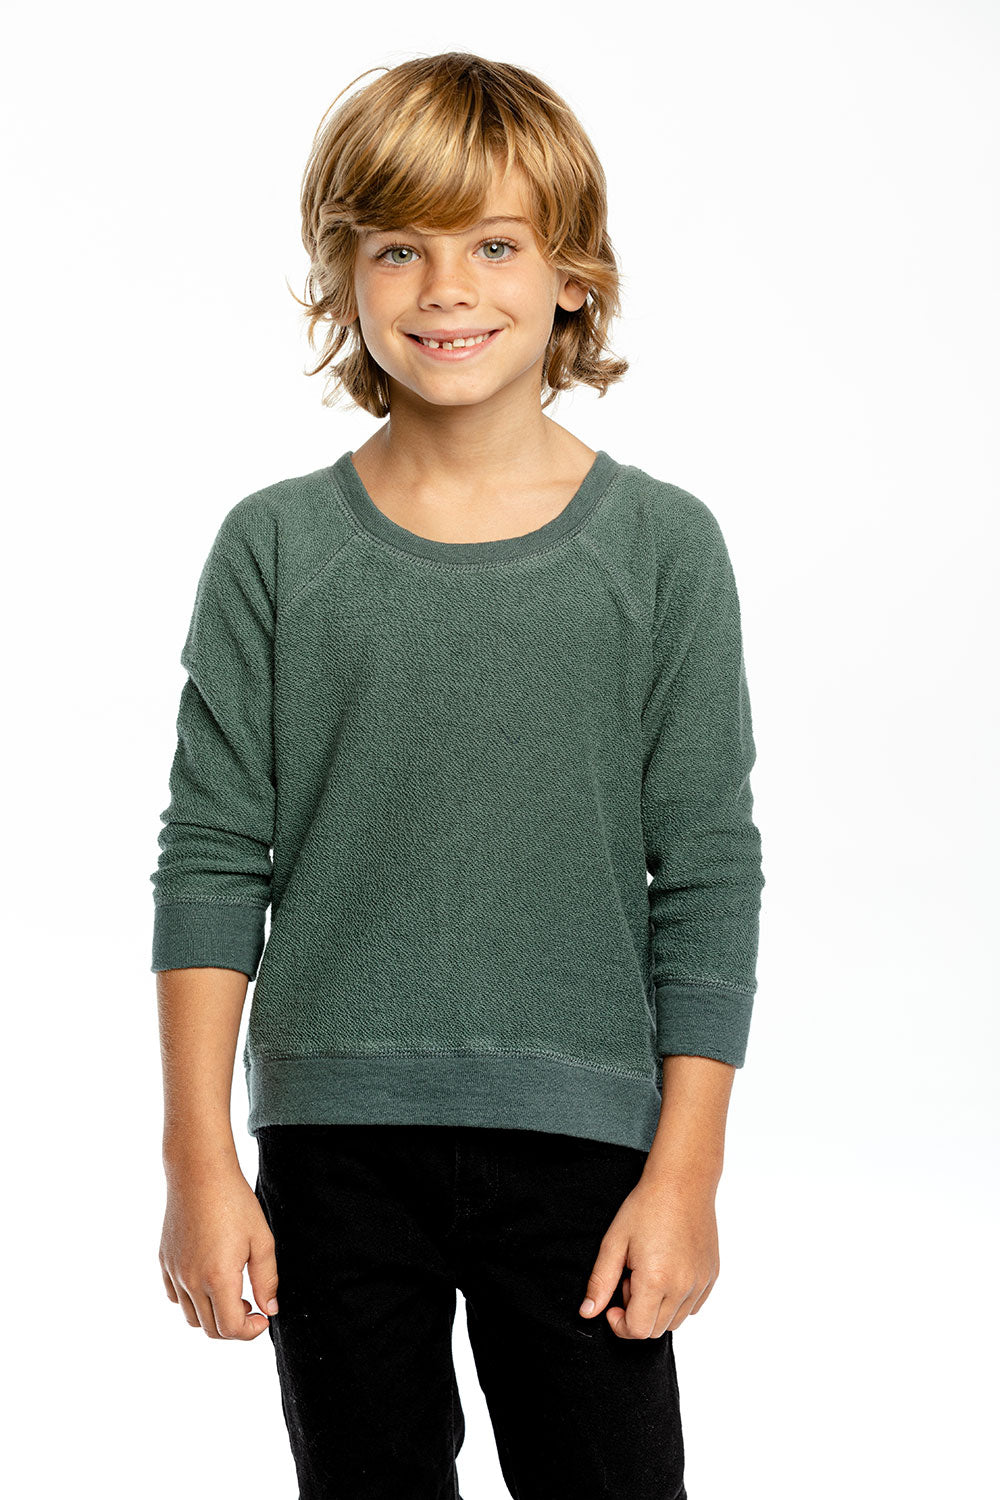 Boys Linen French Terry Long Sleeve Raglan Pullover BOYS - chaserbrand